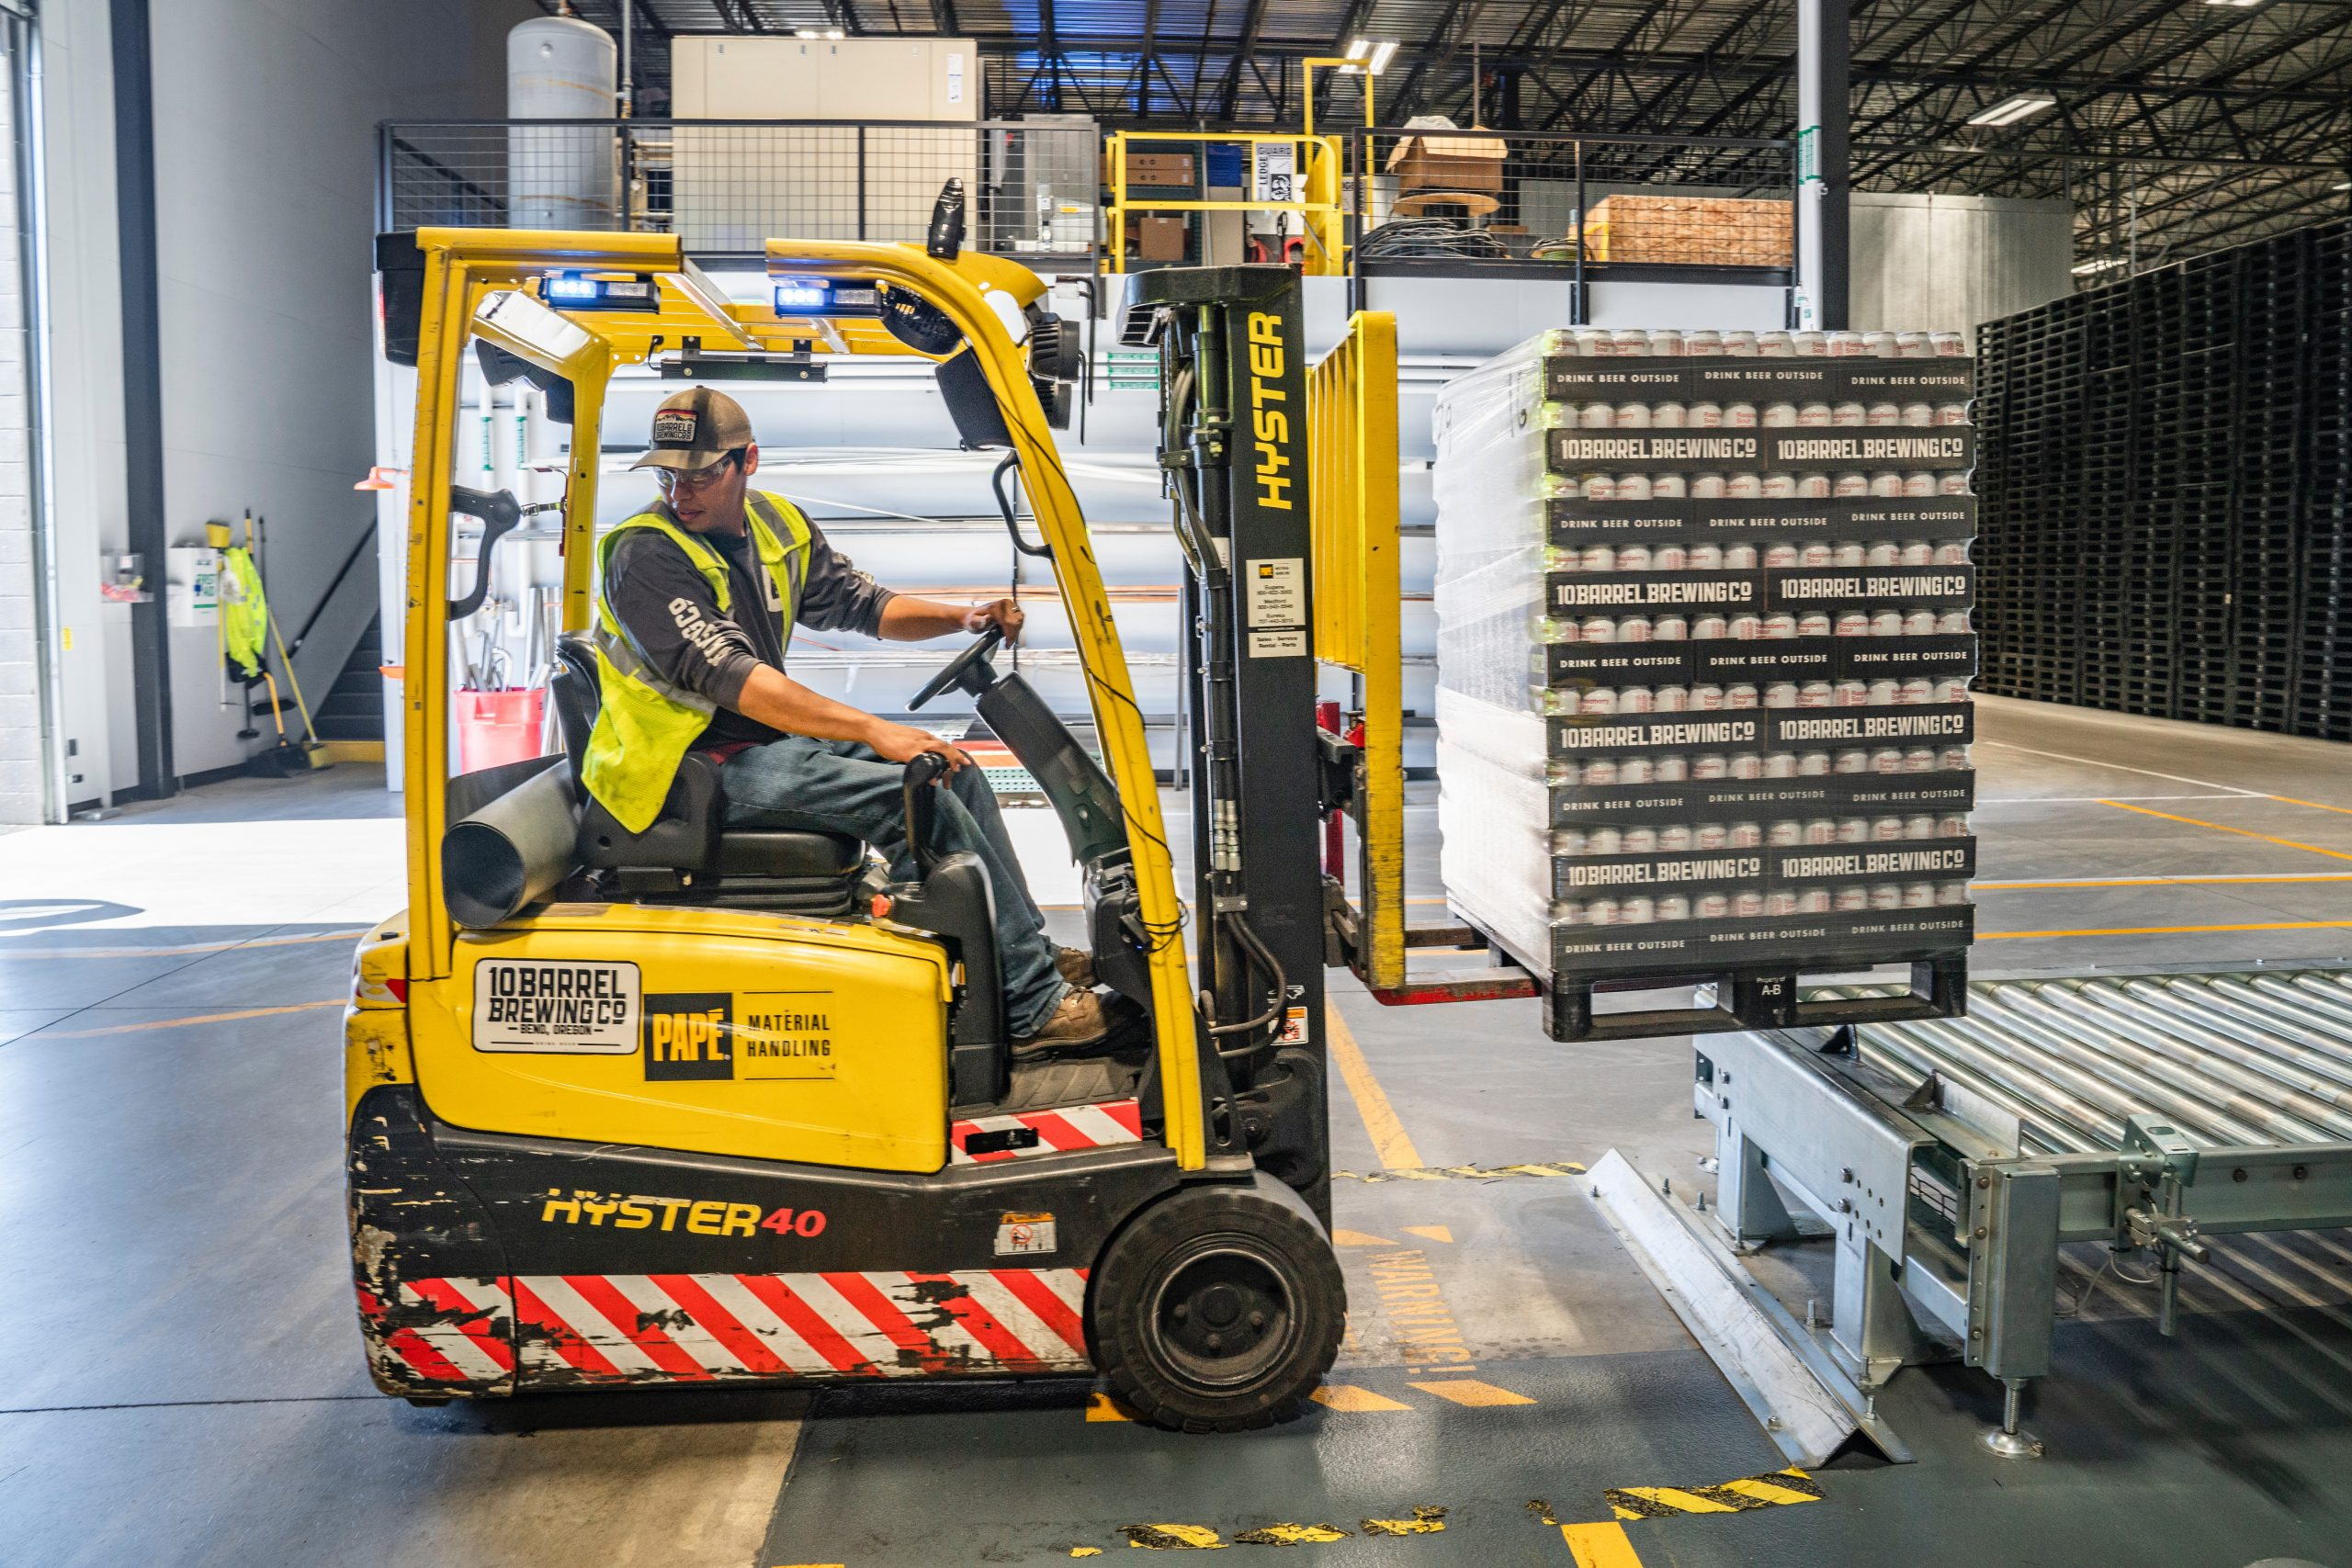 Distribution worker using a forklift in a warehouse